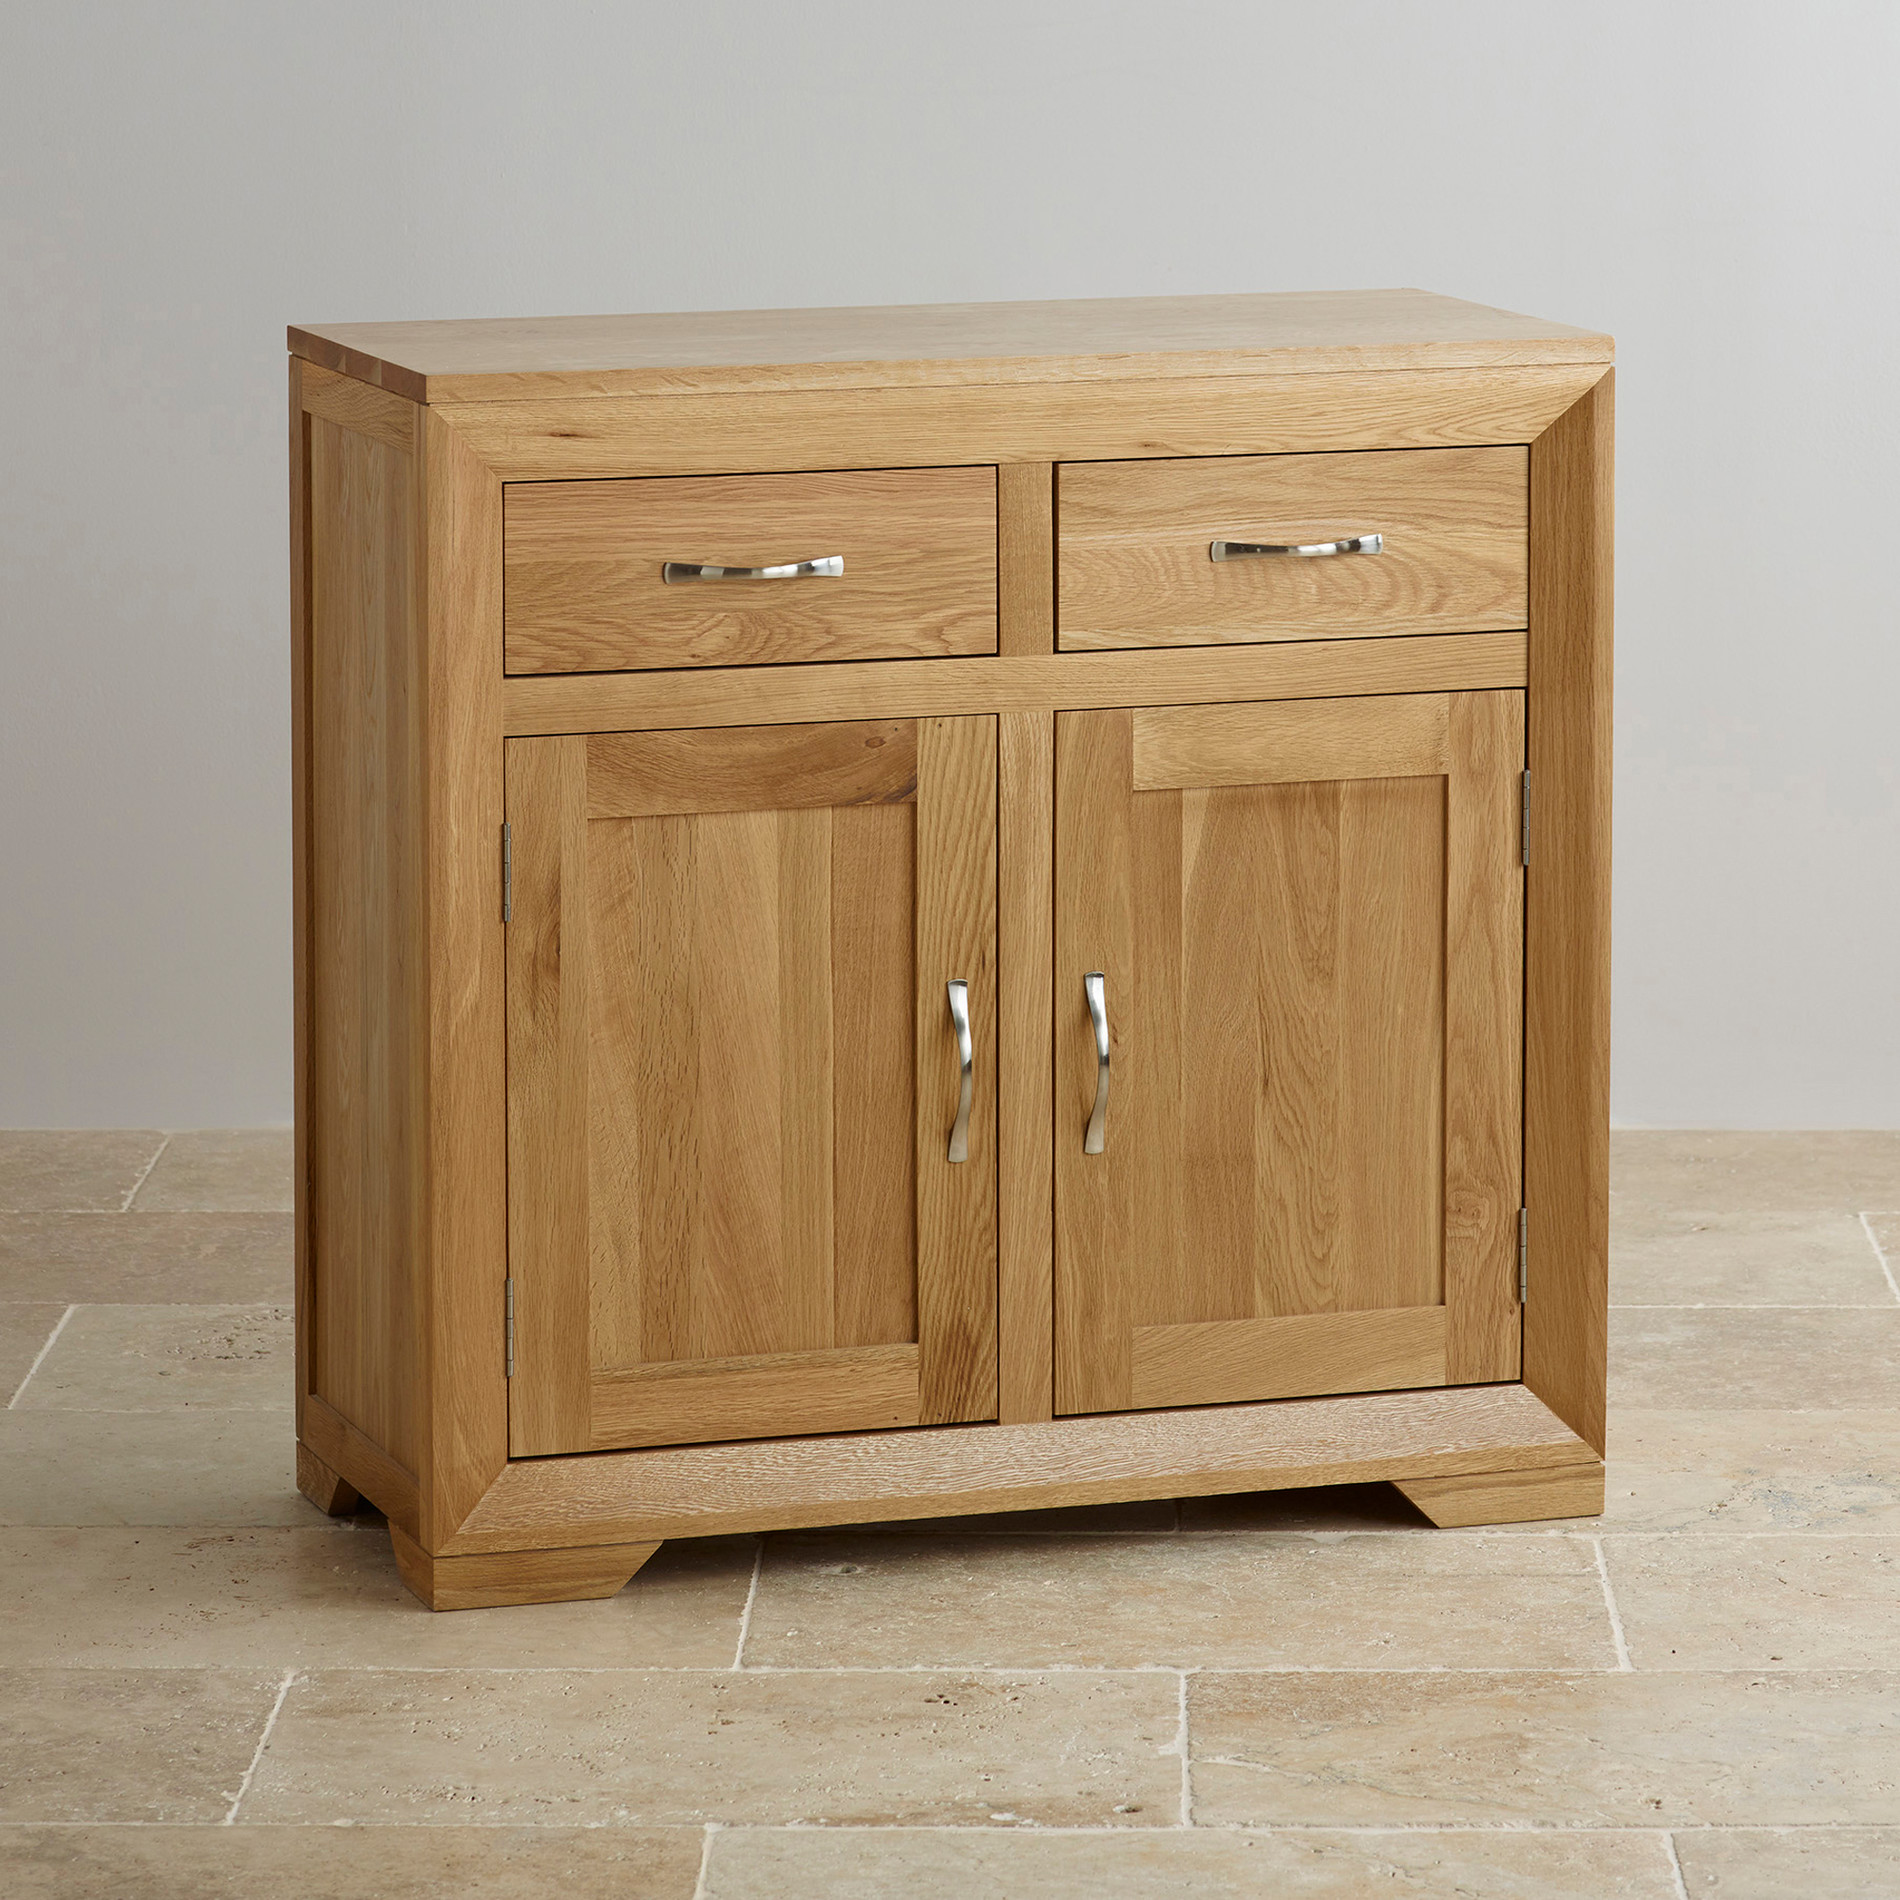 Bevel small sideboard in natural solid oak furniture